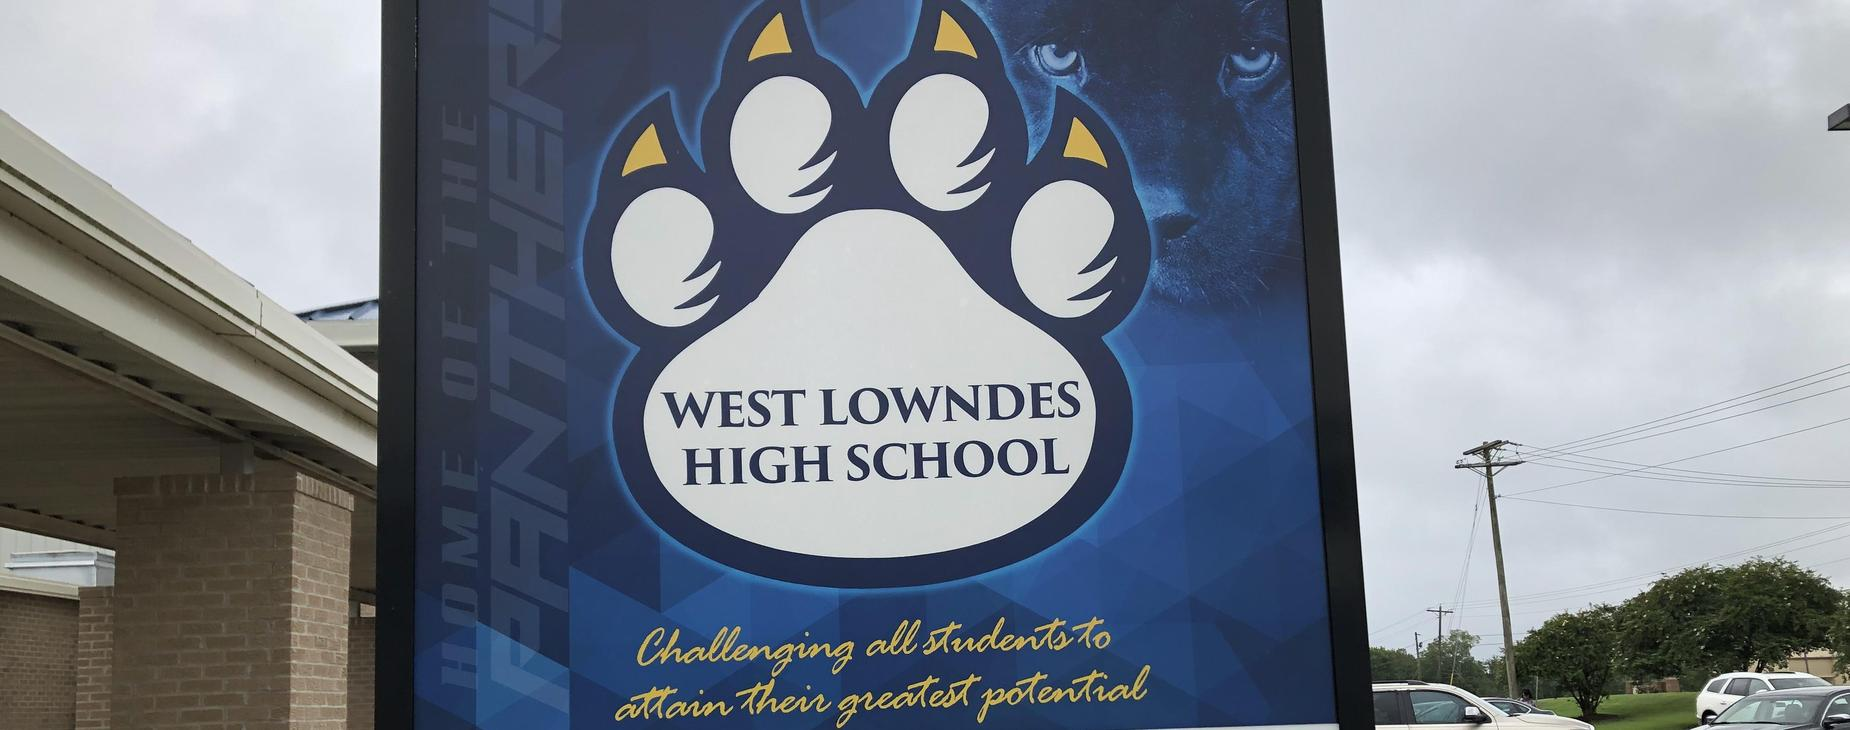 WLHS front sign